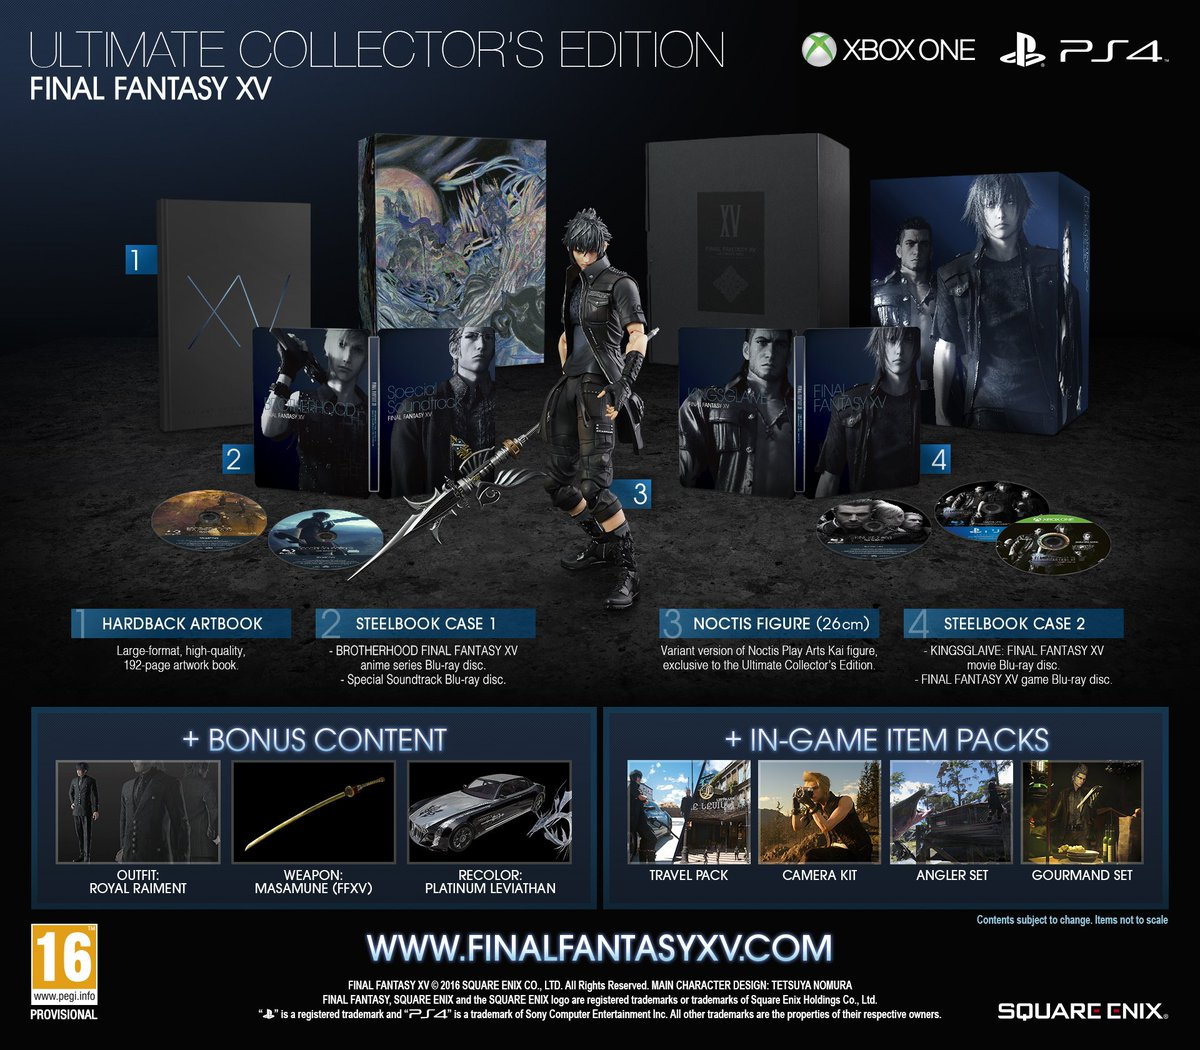 final fantasy xv on twitter good news we will be producing more